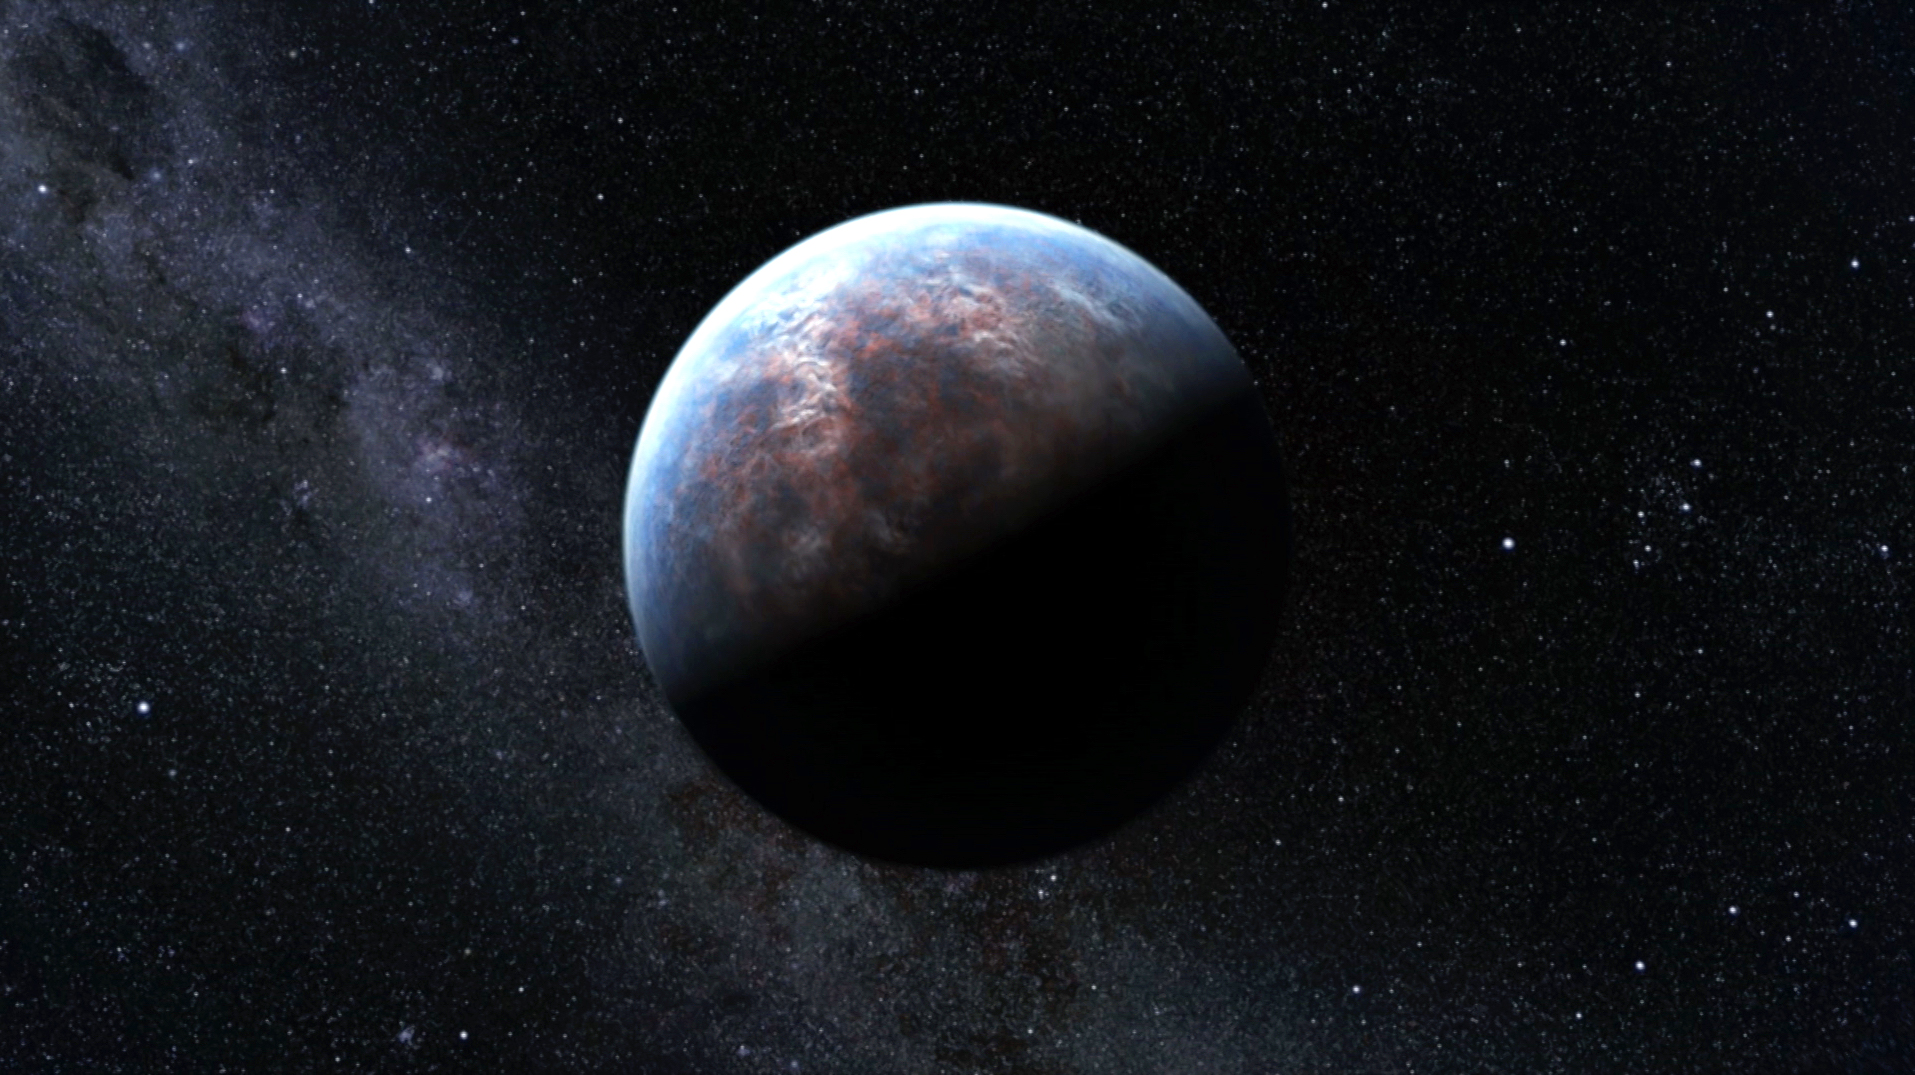 Excited Reports of 'Habitable Planets' Need to Come Back Down to Earth